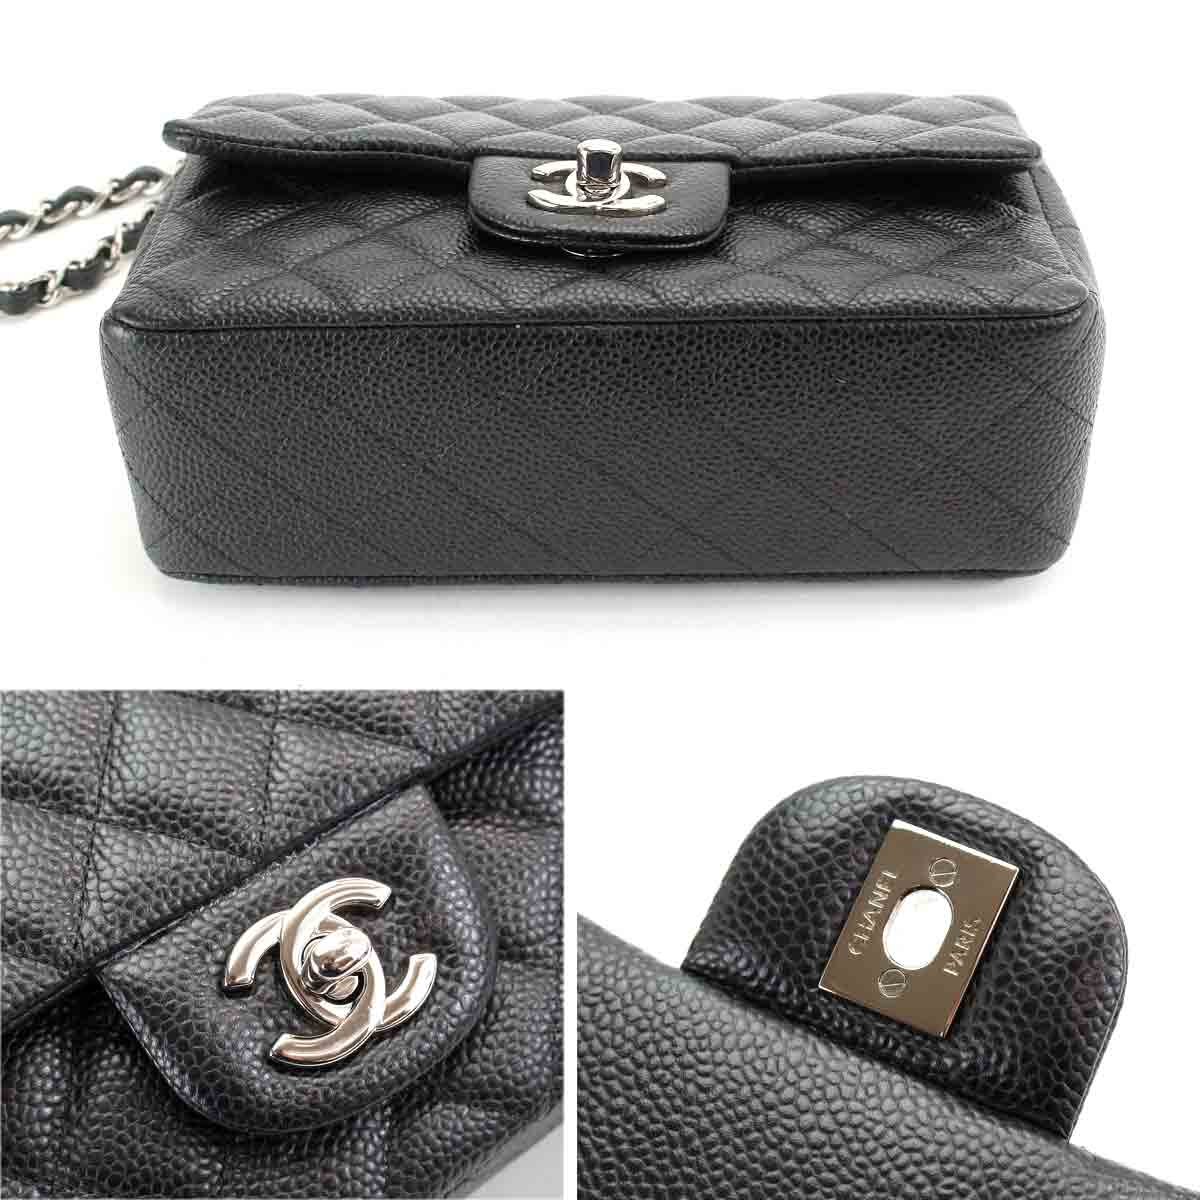 49f75778da5d Chanel CHANEL mini-matelasse 20 chains shoulder bag caviar skin black A69900